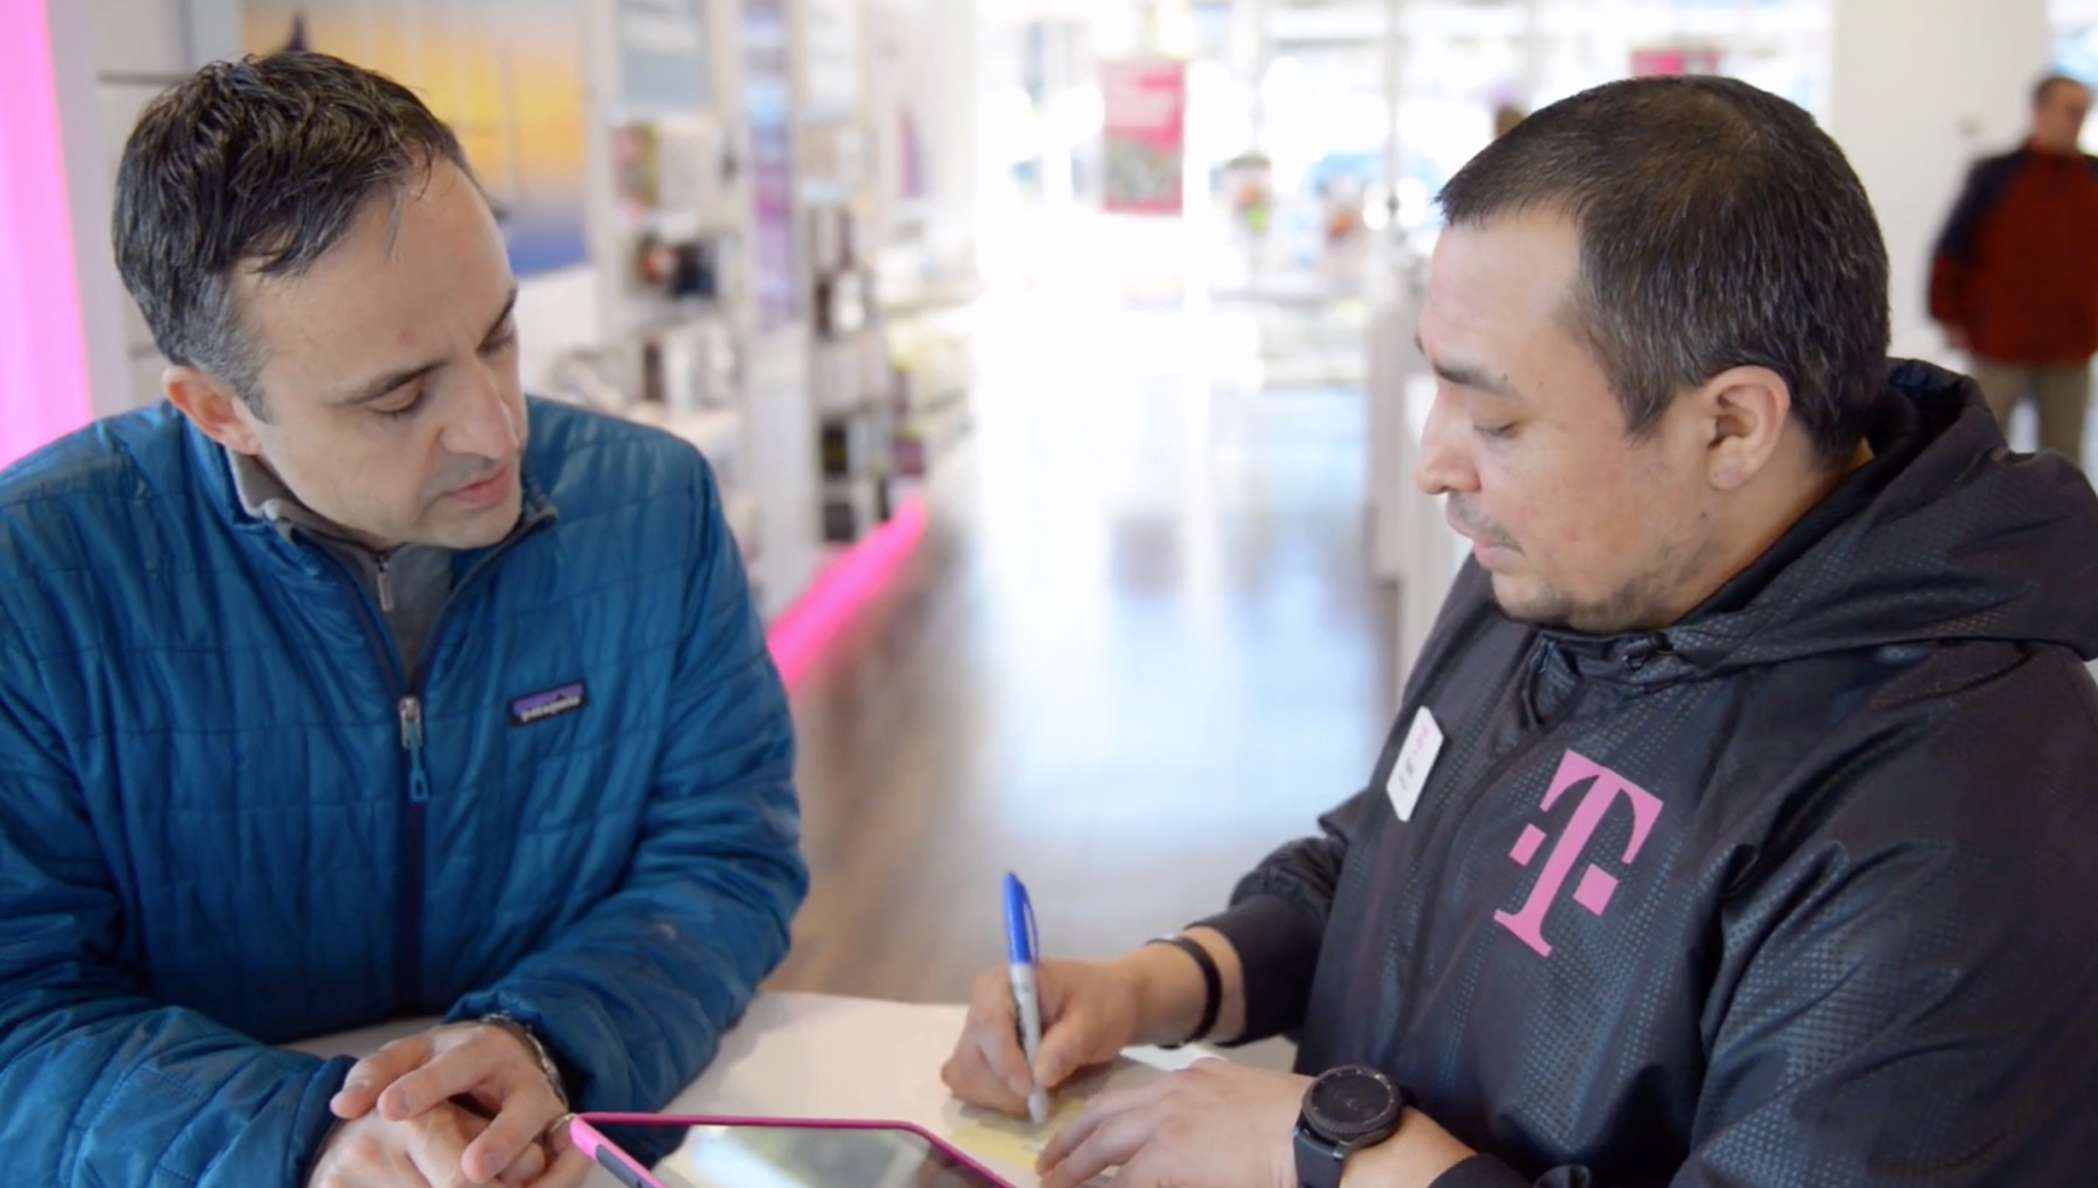 Two people in a T-Mobile office working through a phone contract.